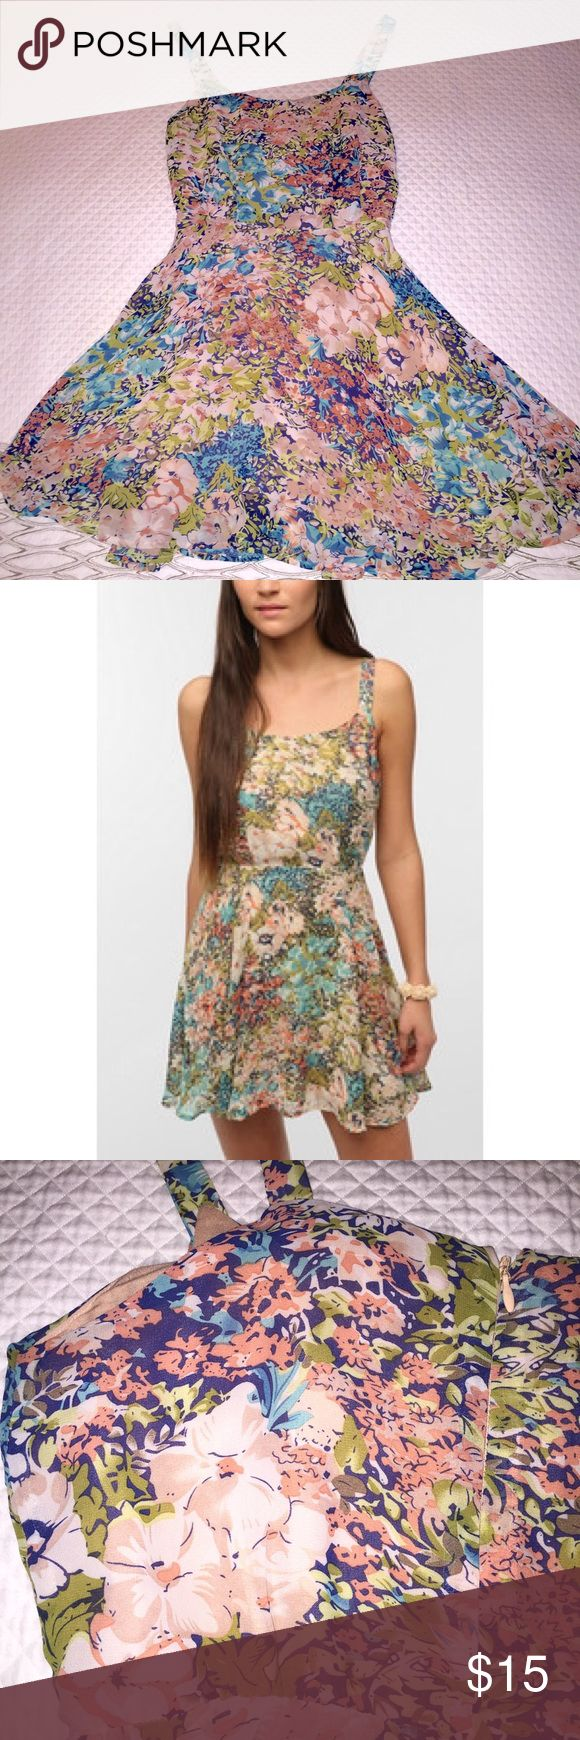 "Lucca Couture/Urban Outfitters floral dress Flirty and fun floral dress by Urban Outfitters Lucca Couture line. 100% polyester, fully lined, beautiful design. Zipper and clasp closure. Waist 28"", bust 35.5"", overall length 33"". Size S Urban Outfitters Dresses Mini"